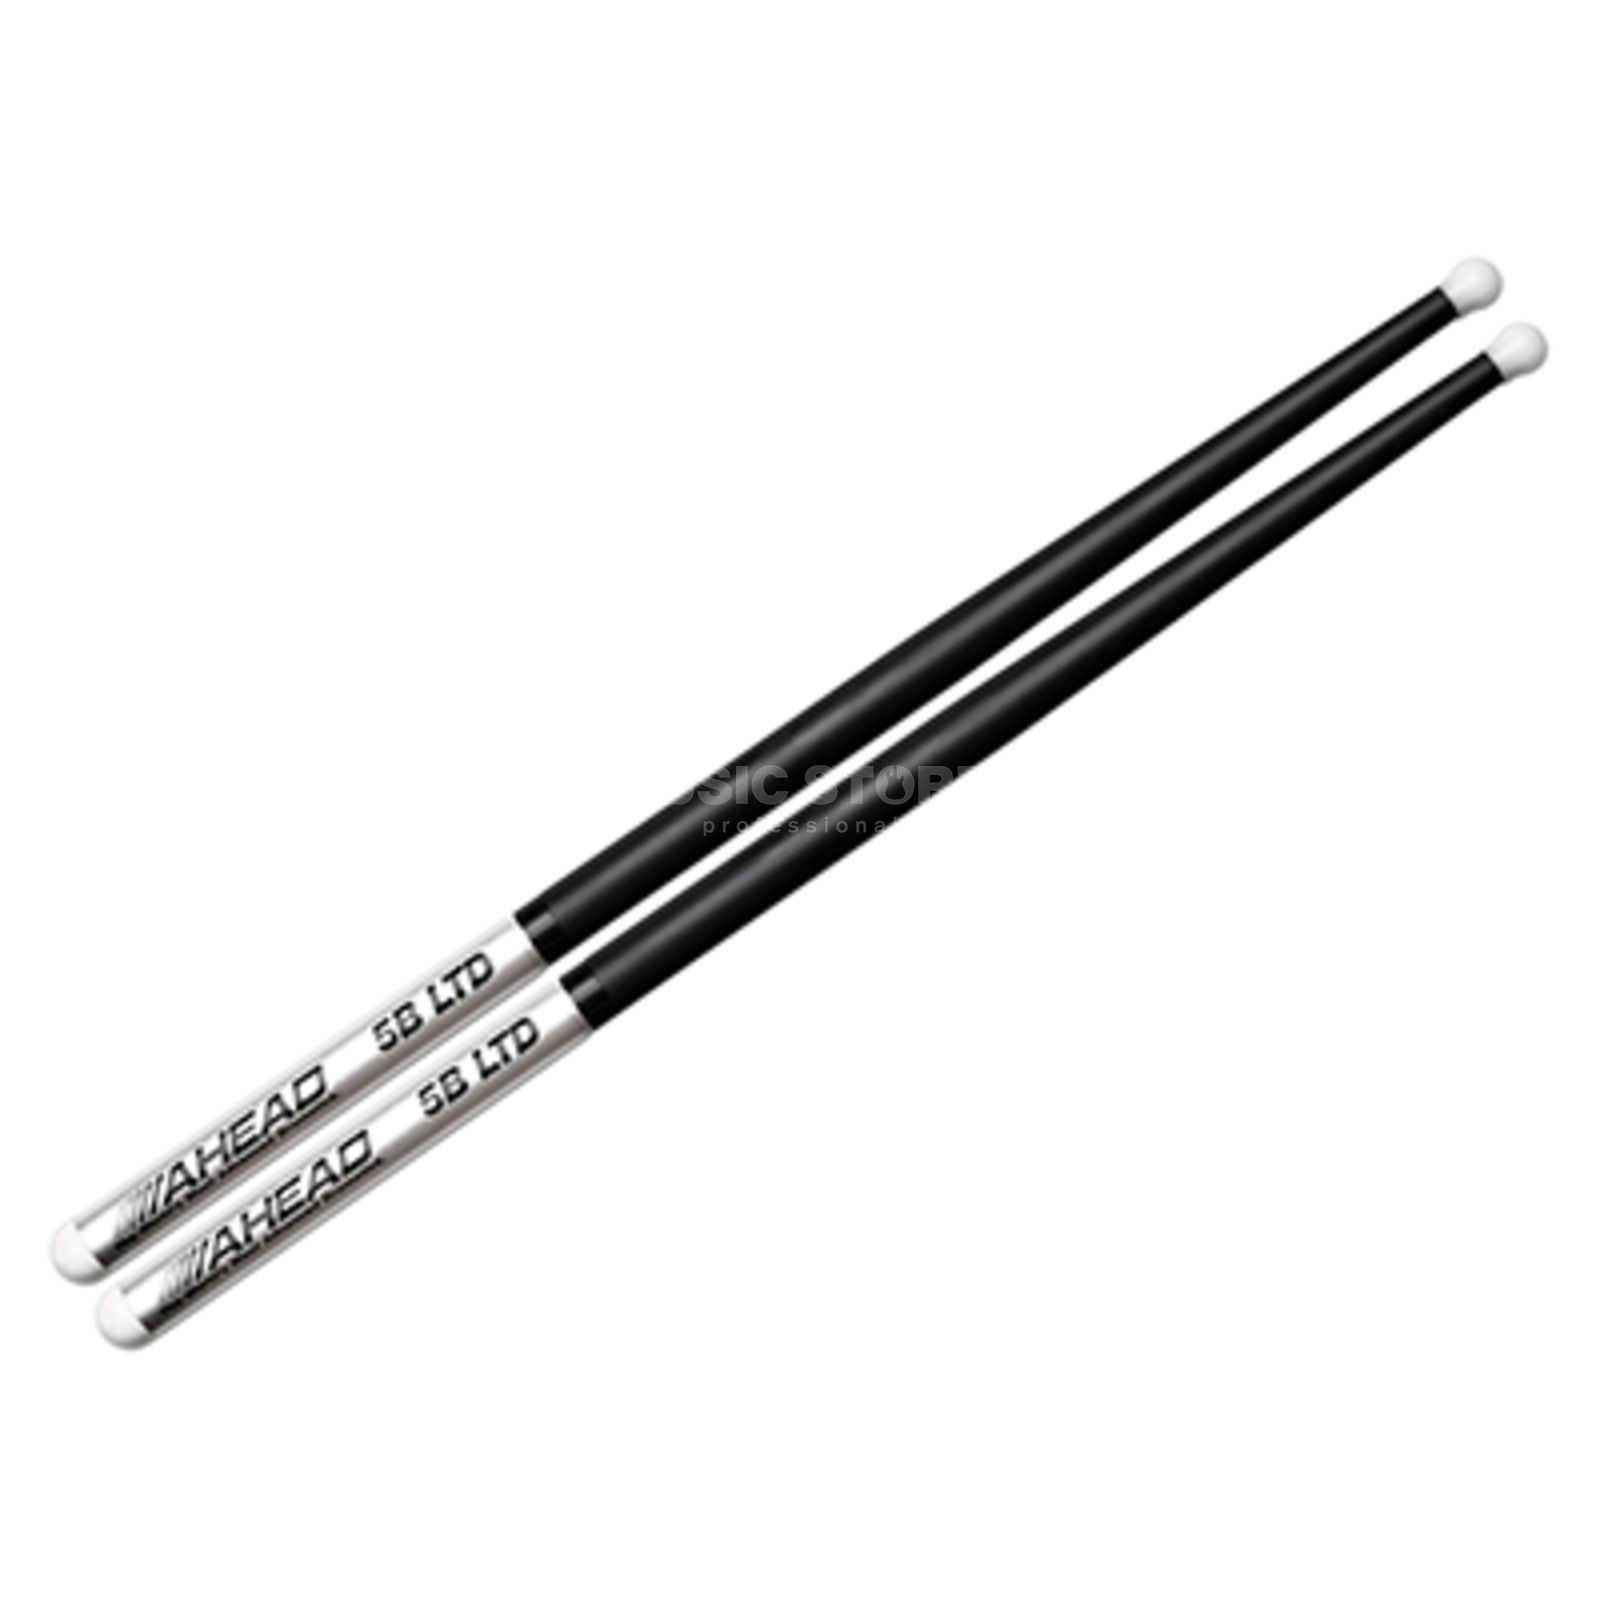 Ahead Sticks 5B LTD Aluminium Sticks Long Taper Produktbillede